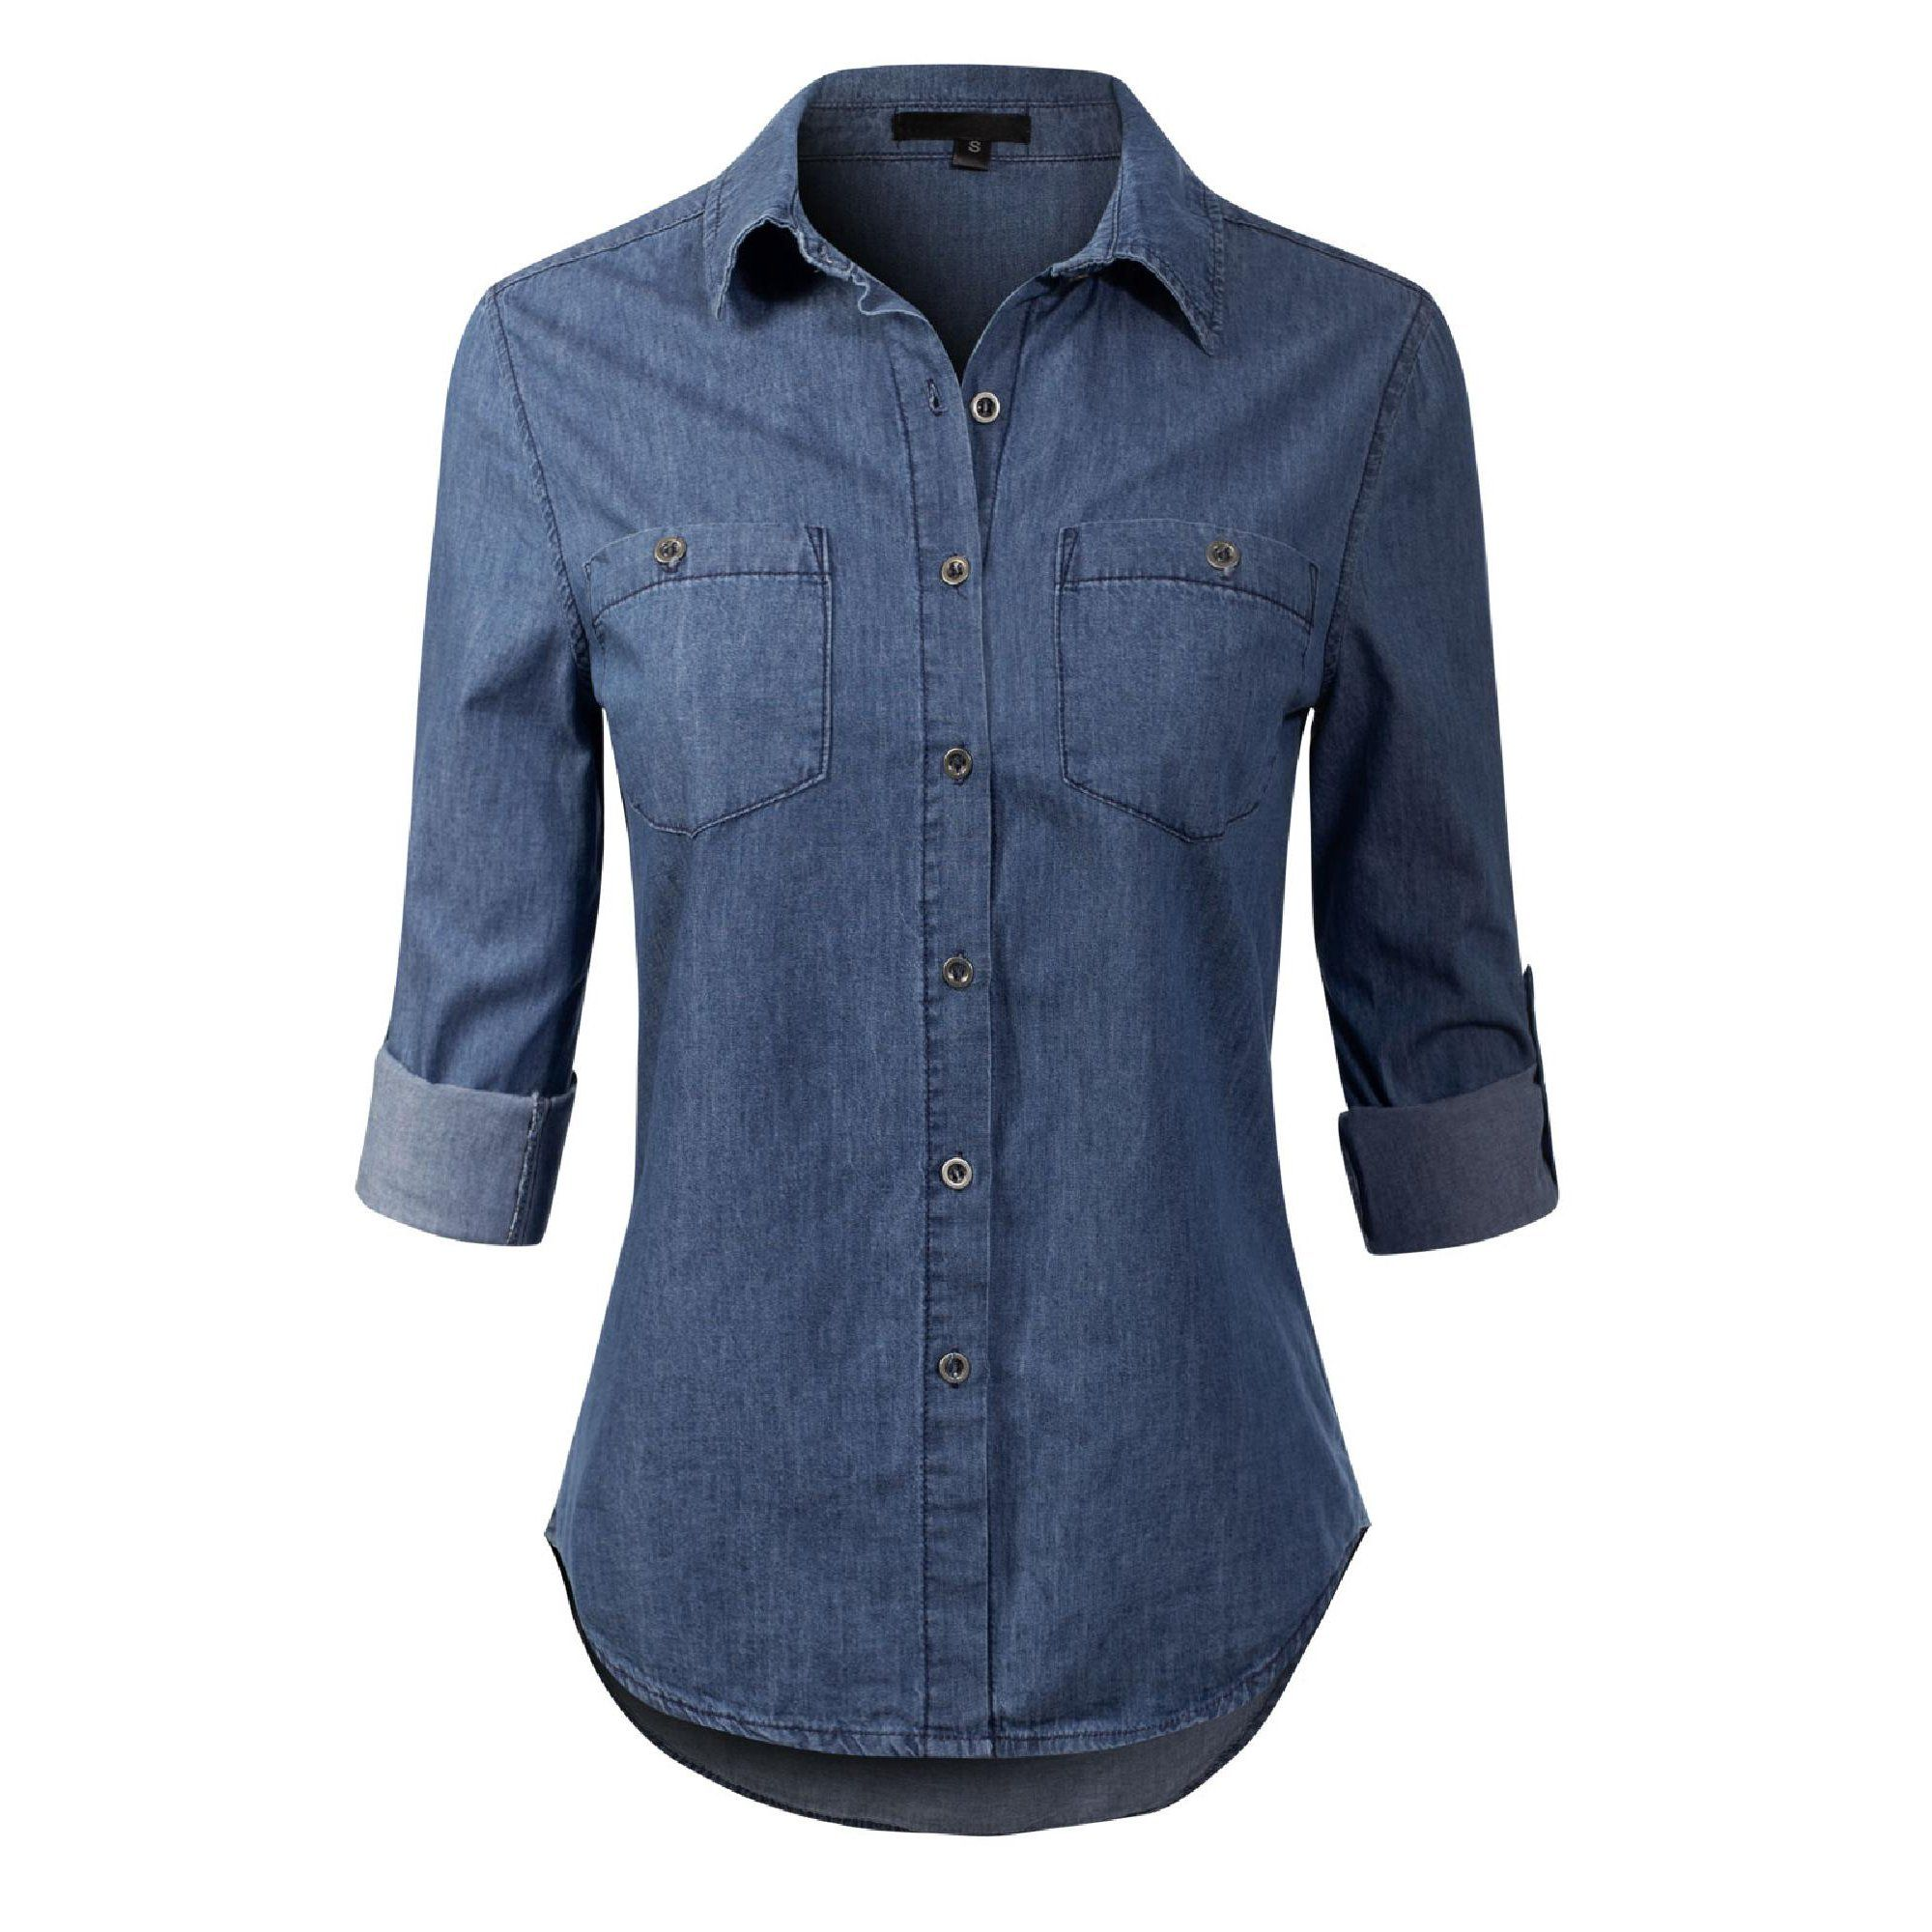 Made By Olivia Made By Olivia Women S Basic Classic Roll Up Sleeve Button Down Chambray Denim Shirt Walmart Com In 2021 Chambray Denim Shirt Denim Shirt Best Hoodies For Men [ 2000 x 2000 Pixel ]